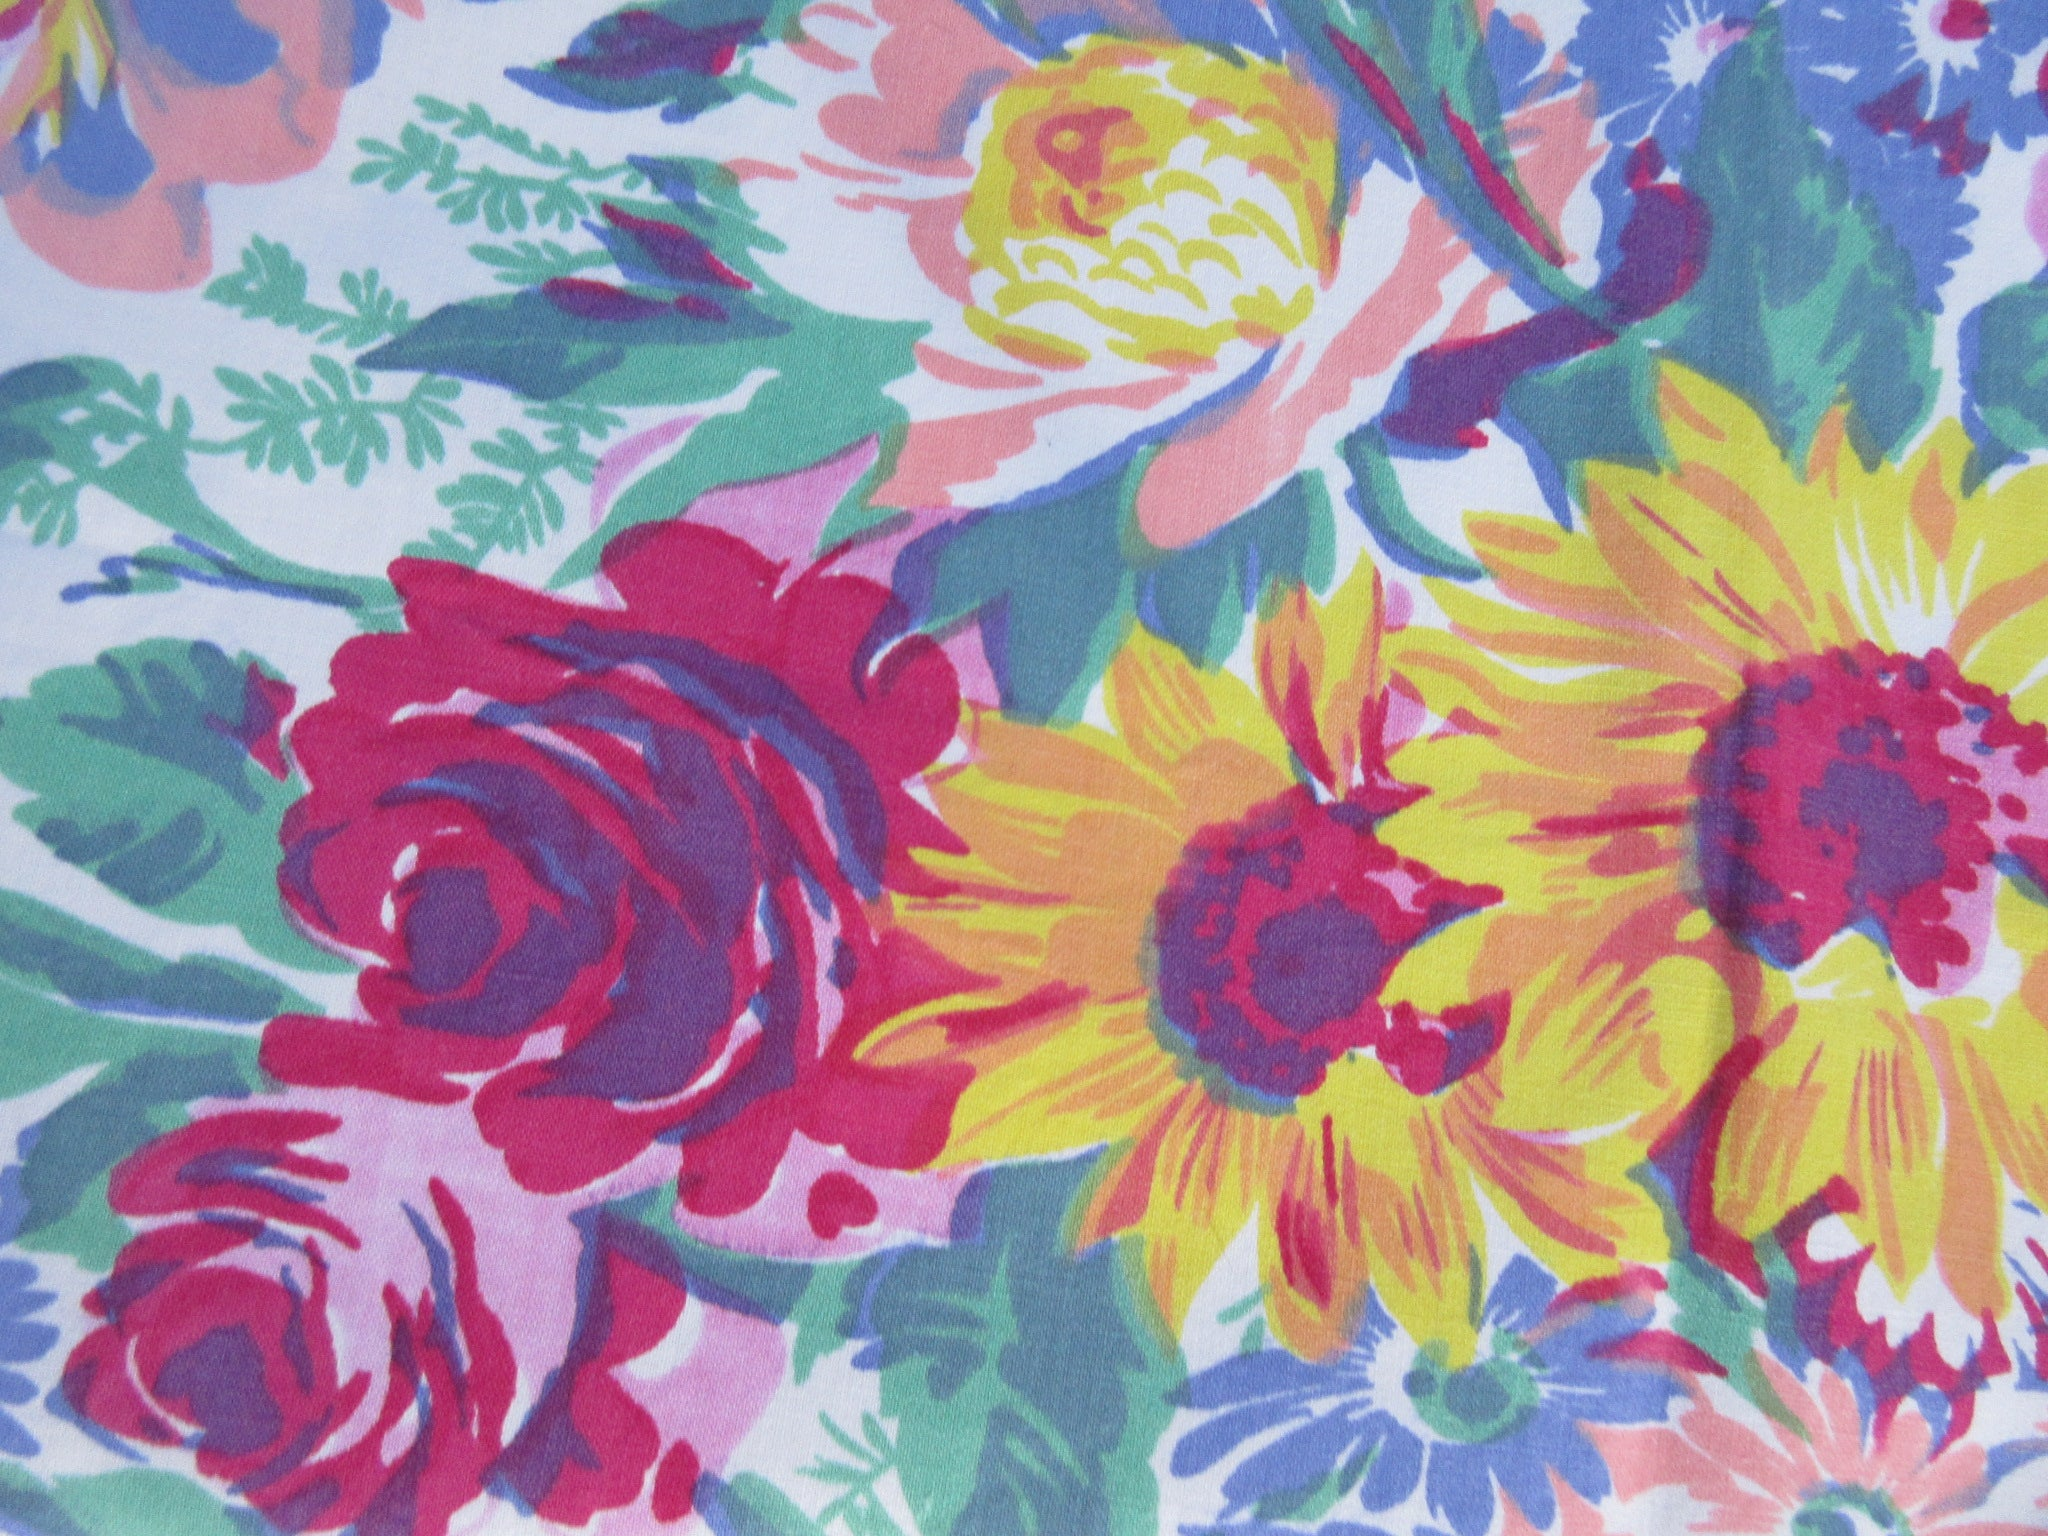 Wilendur Giant Bouquet Floral Vintage Printed Tablecloth (62 X 56)